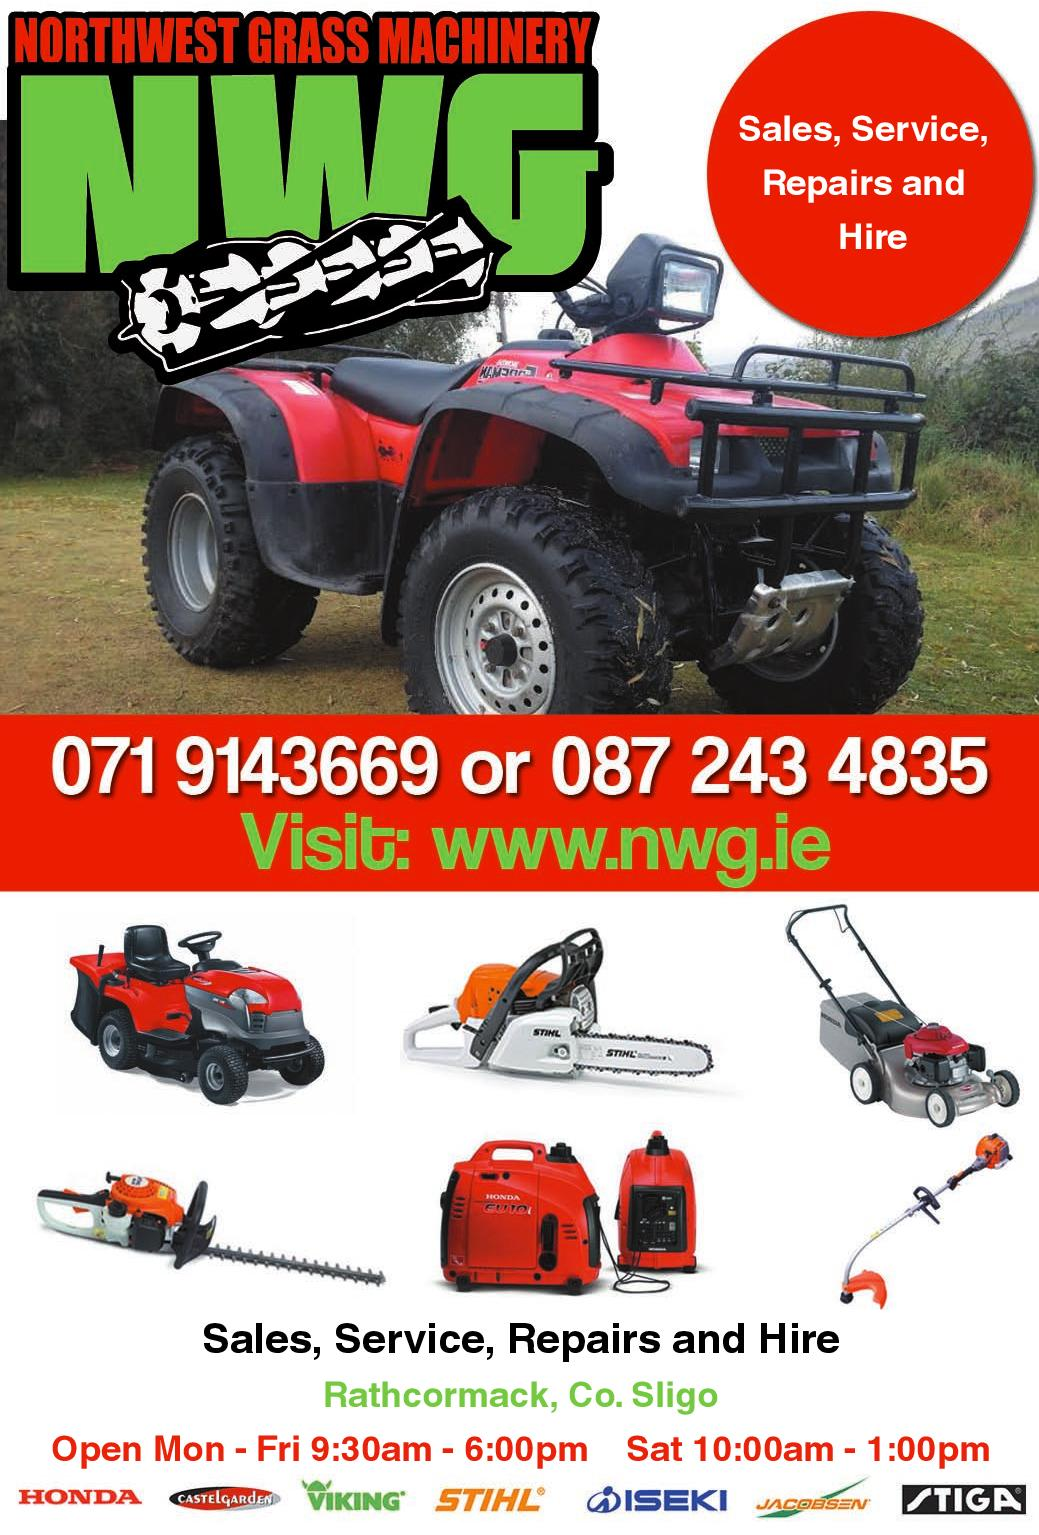 NW Grass Machinery 88mm X 130mm-page-001